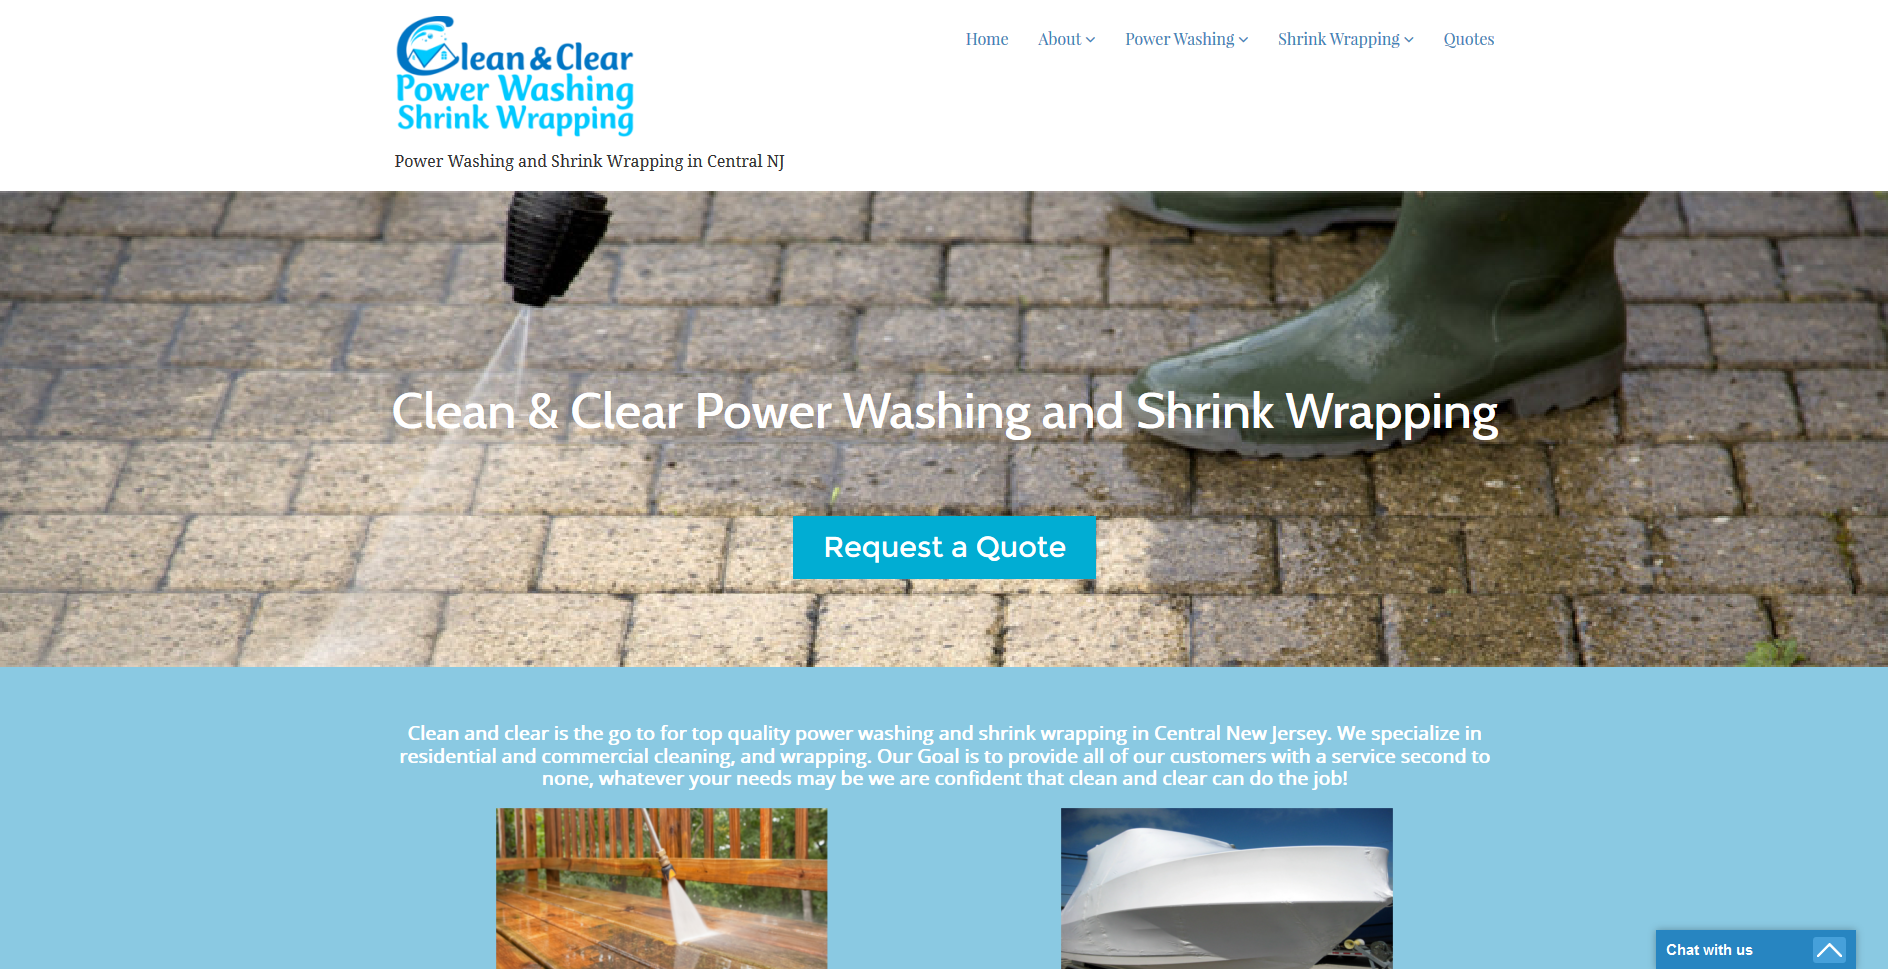 Clean & Clear Power Washing and Shrink Wrapping